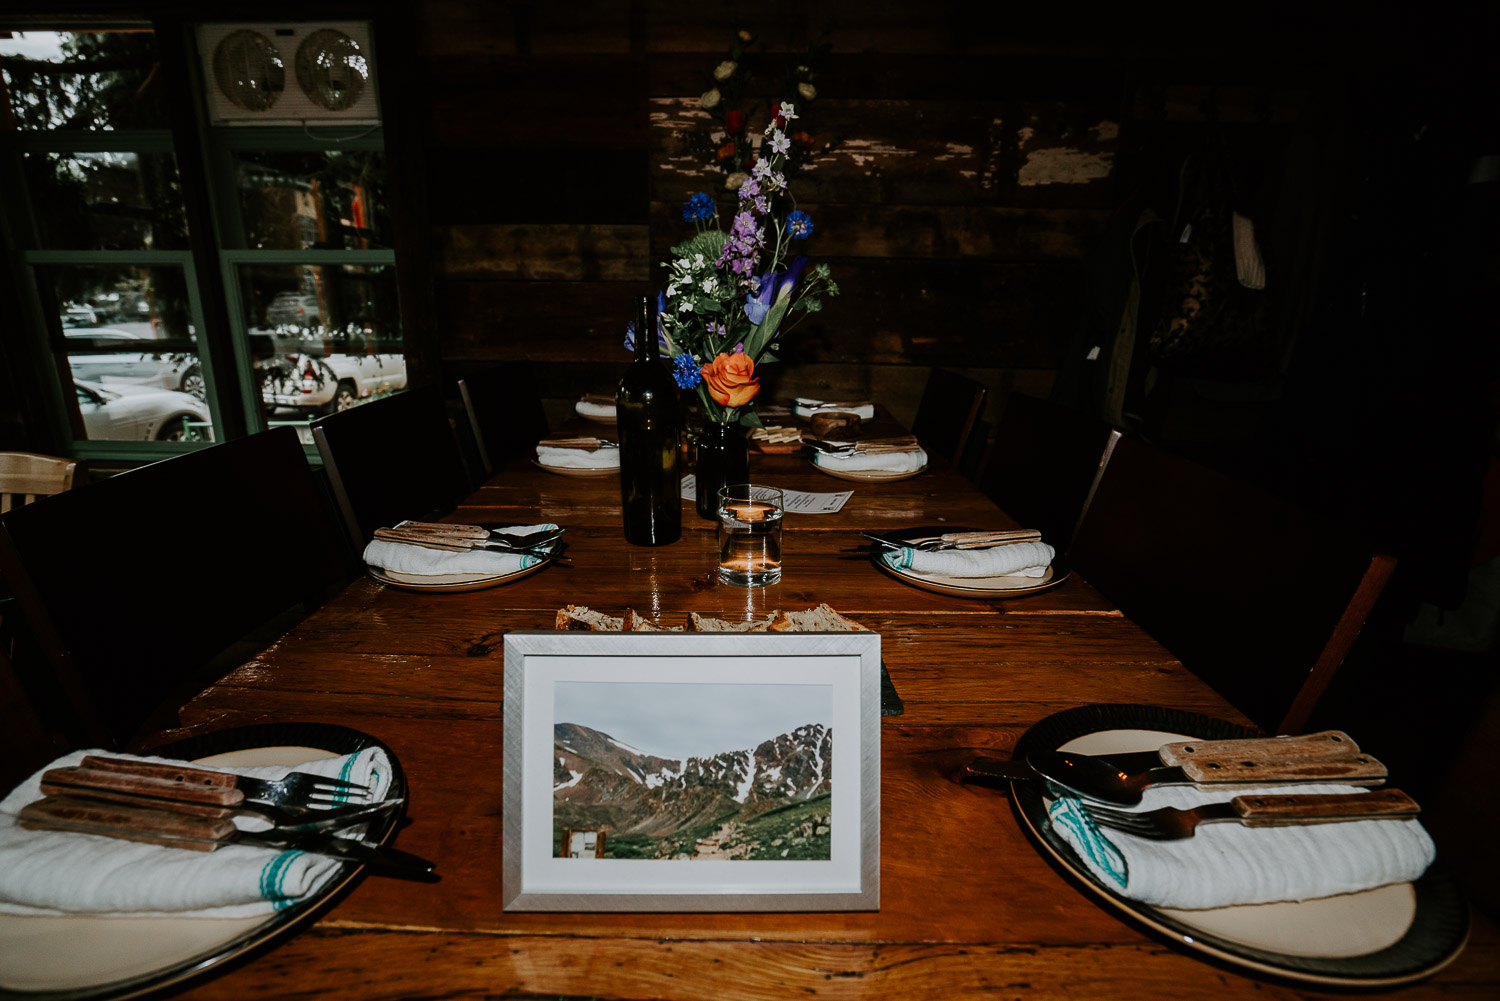 Colorado Wedding Photography, Intimate Wedding, Colorado elopement photography, crested butte wedding, table setting